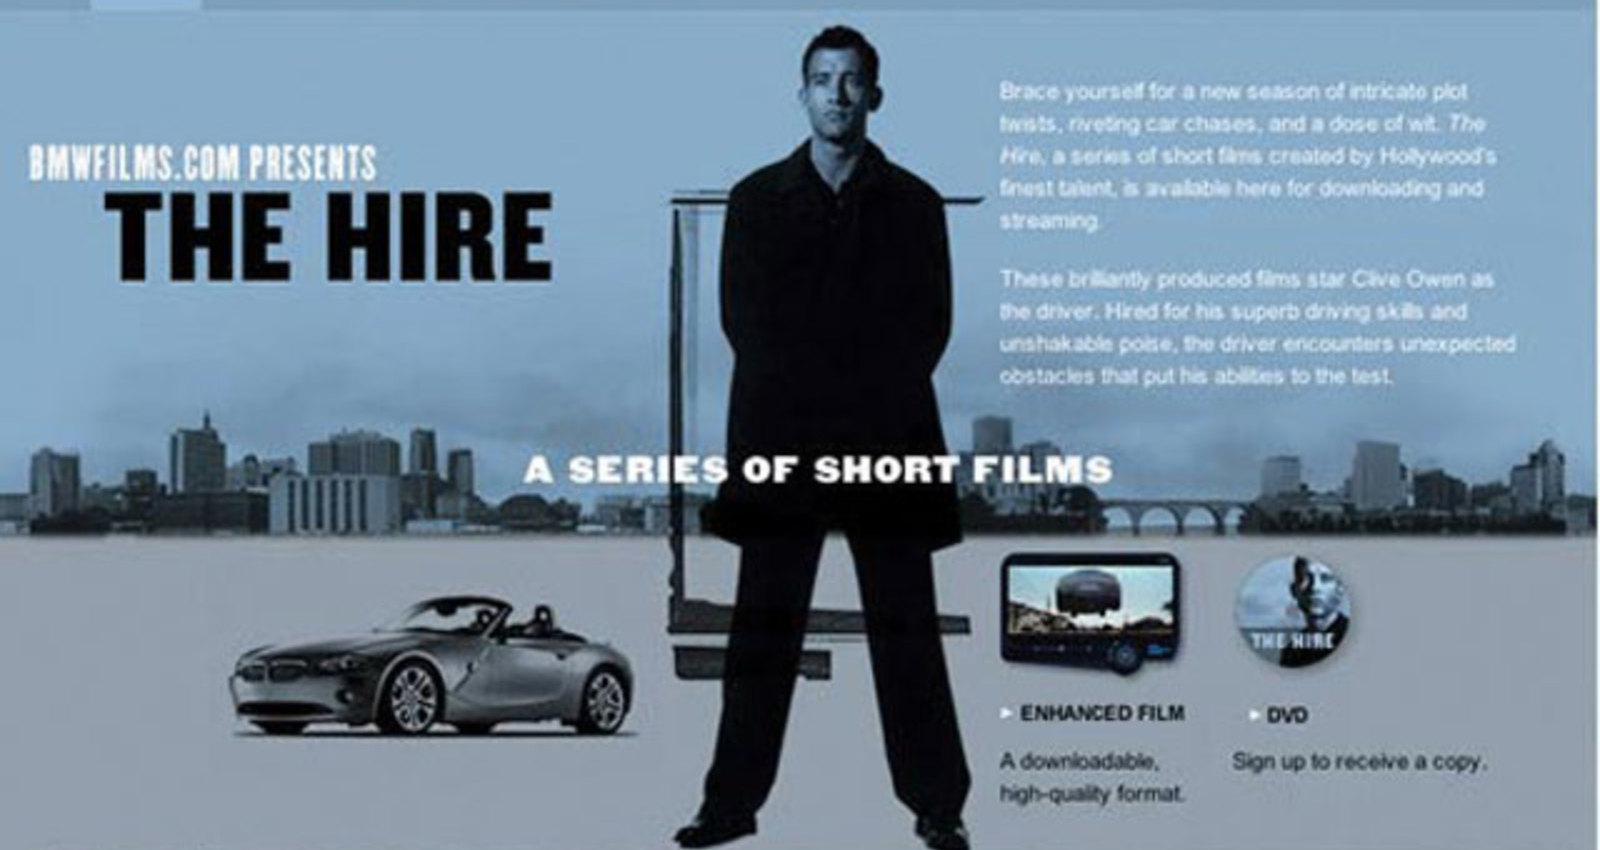 BMW Films/The Hire II Web Site